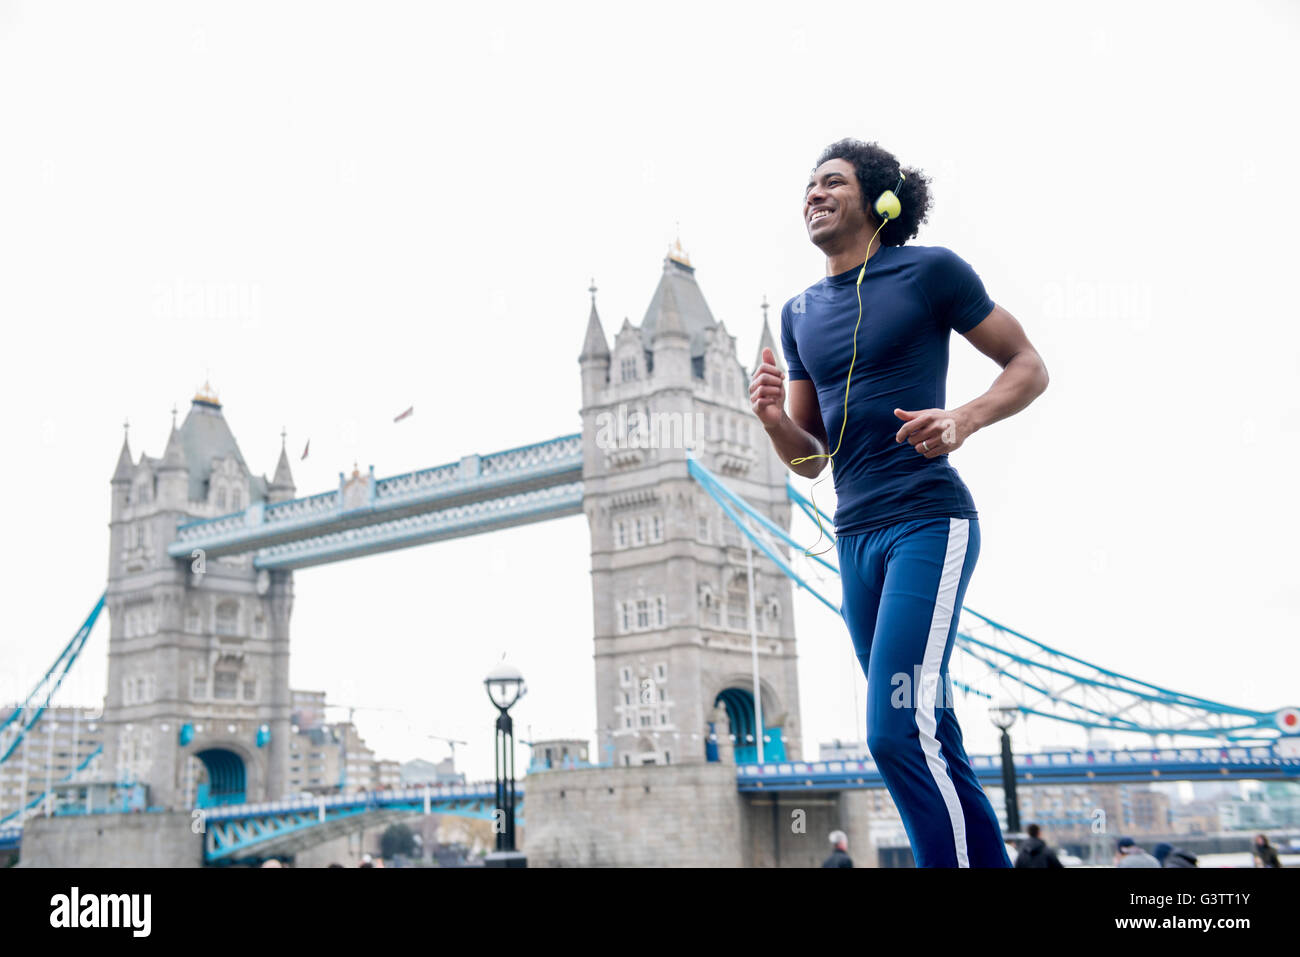 Ein junger Mann Joggen vorbei an Tower Bridge in London. Stockbild